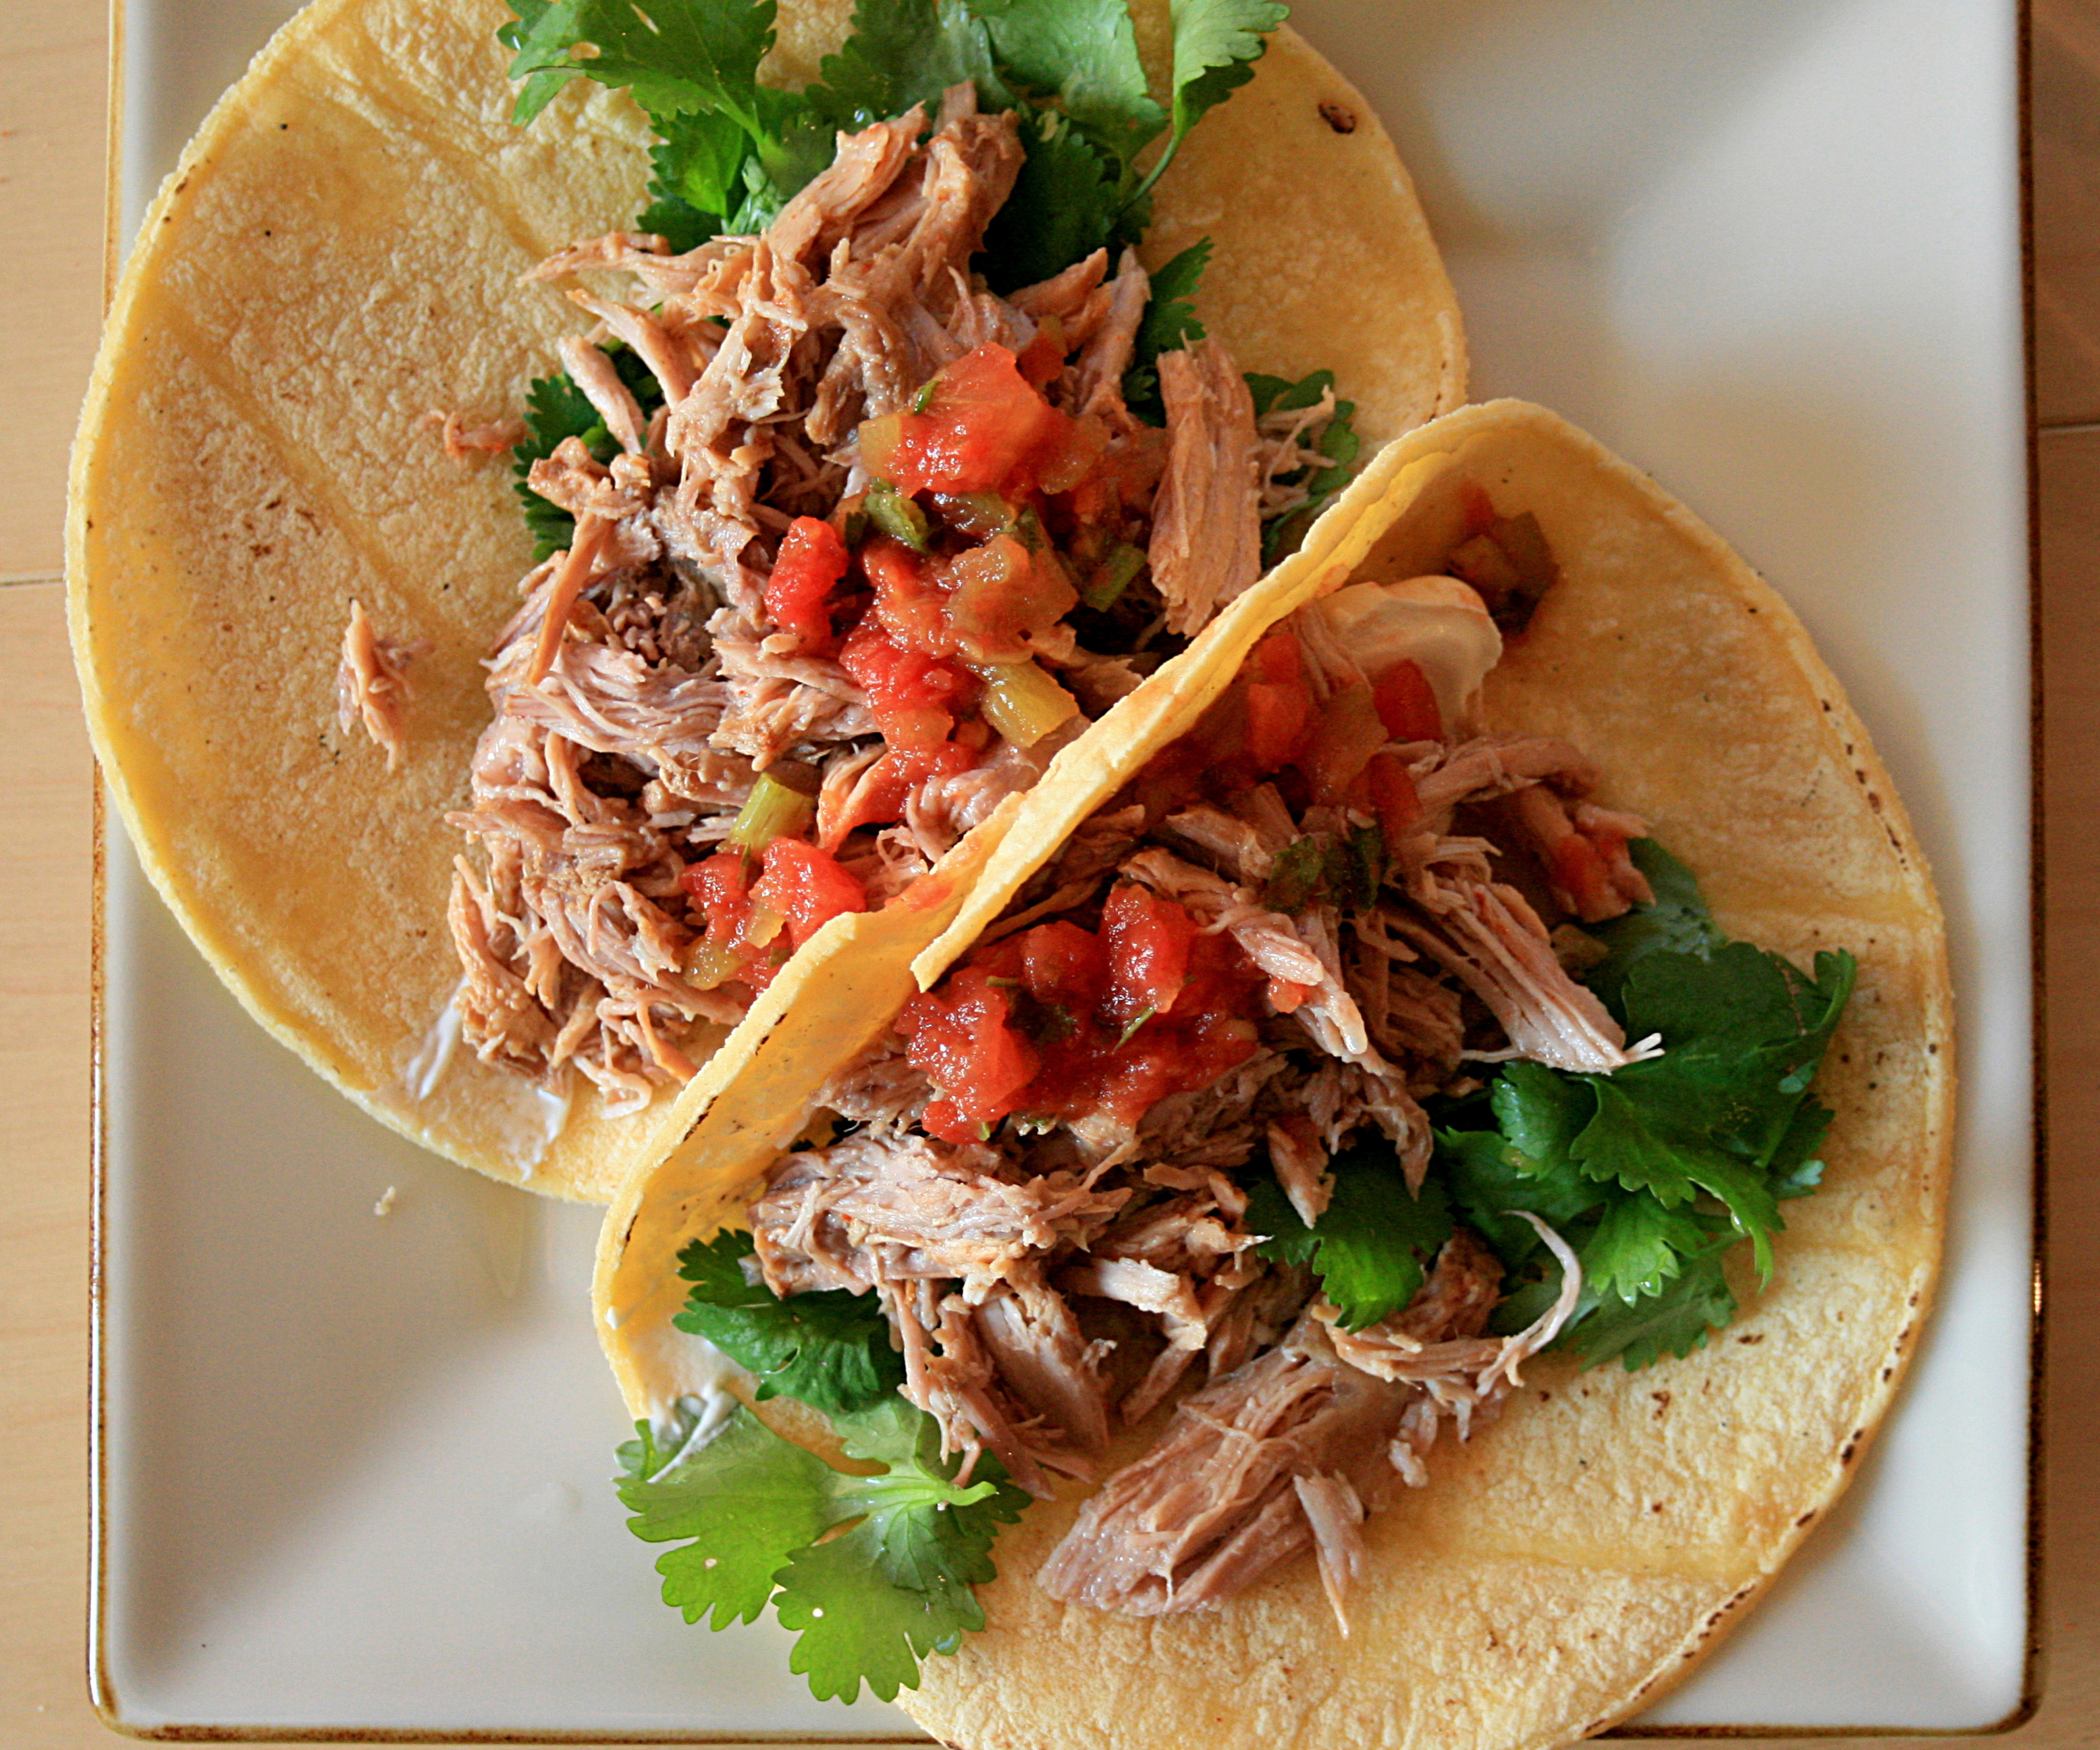 File:Carnitas.jpg - Wikimedia Commons